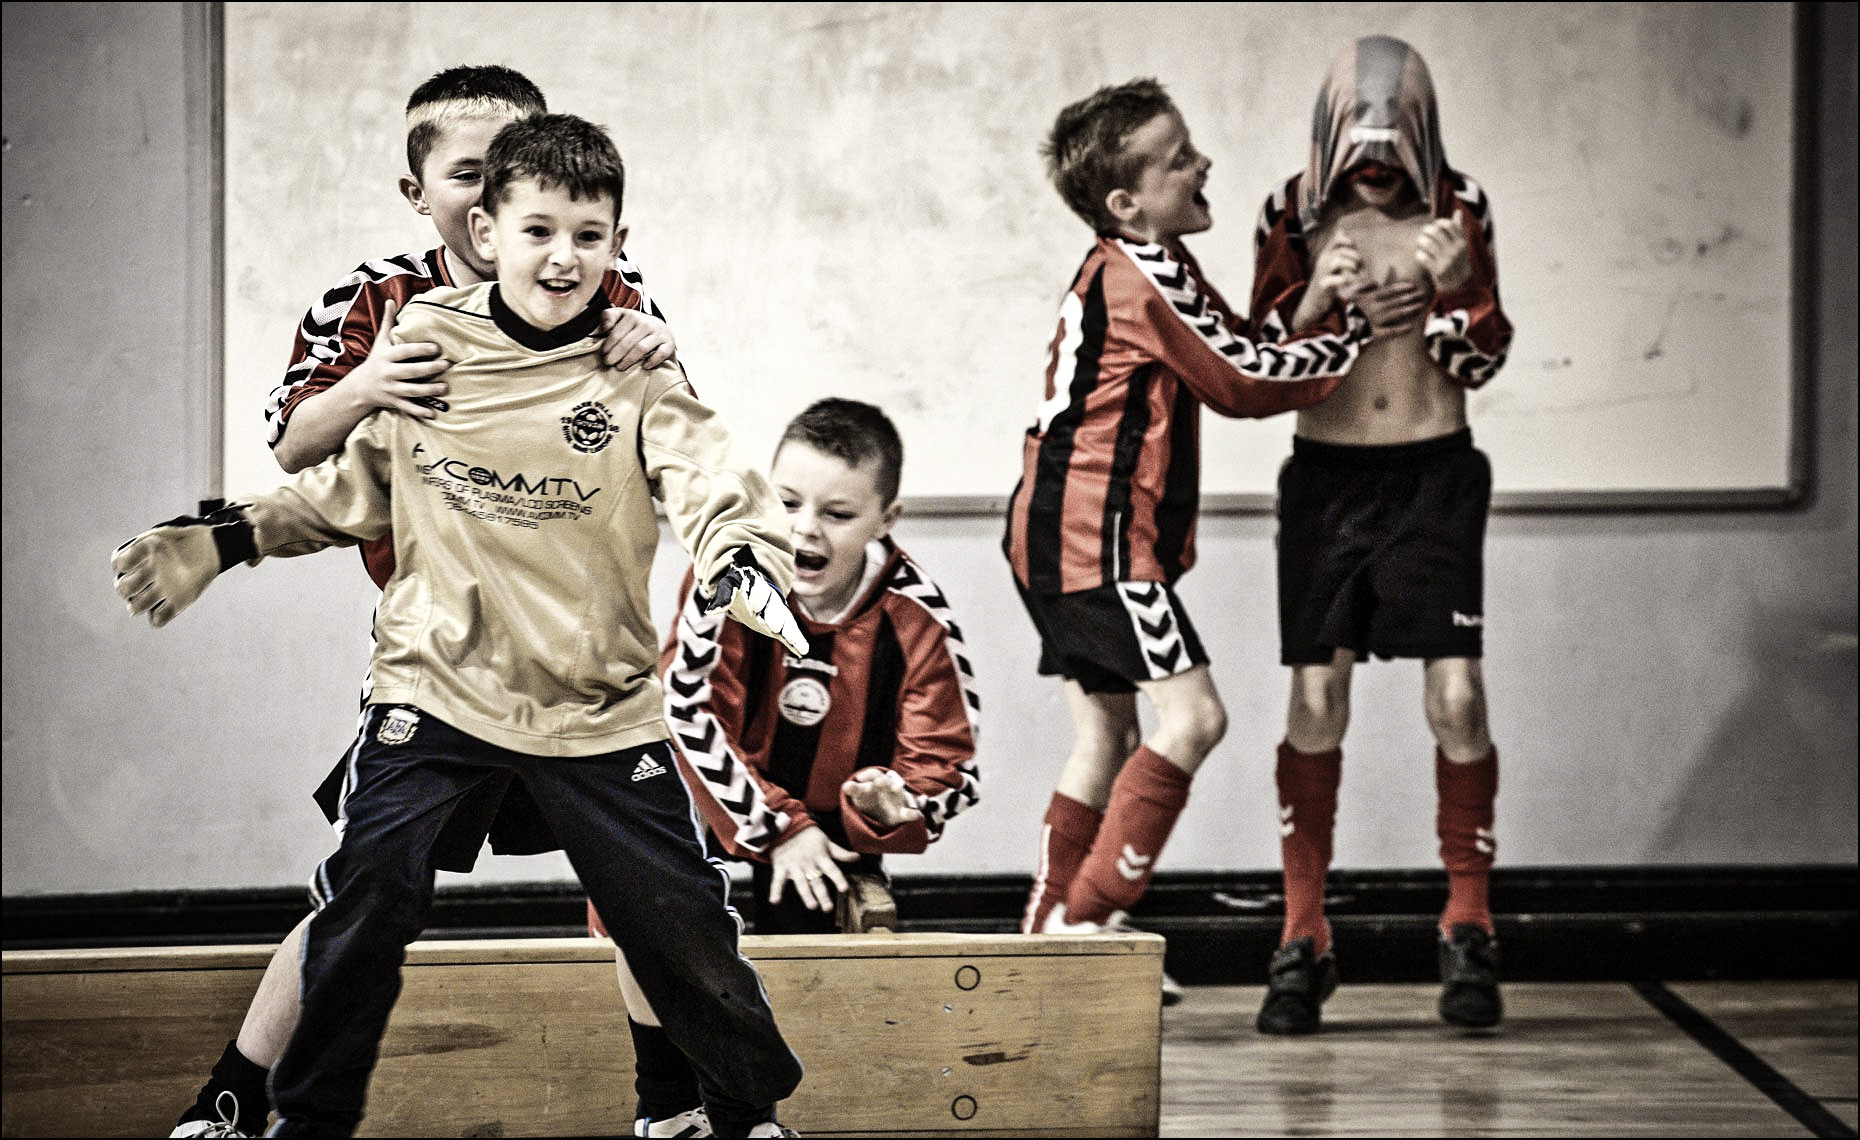 43 youth soccer football charity Scotland  ©Paul Hampton Photographer Glasgow